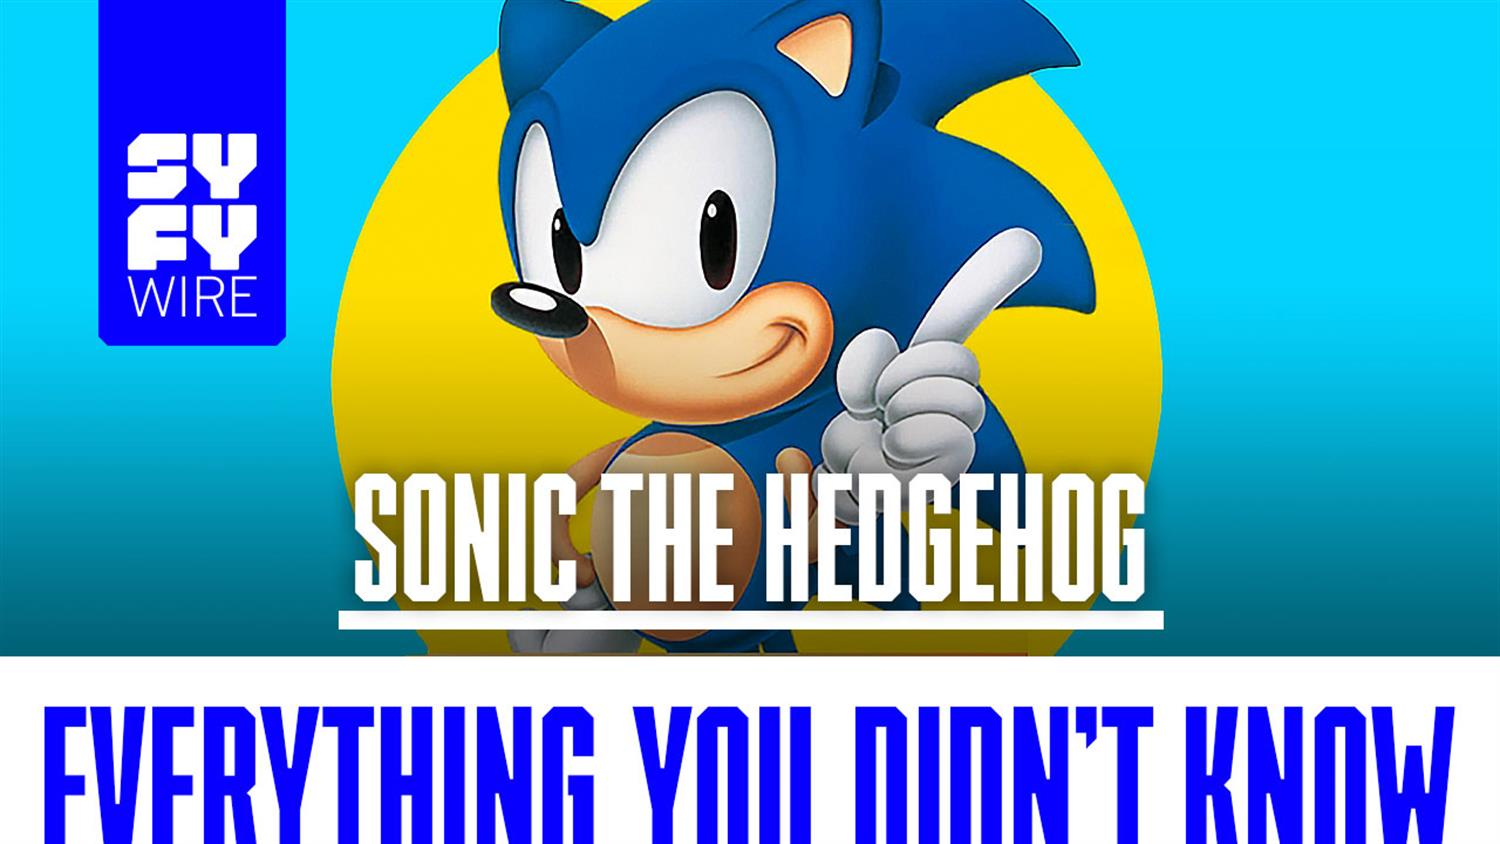 Sonic the Hedgehog TV Show: Everything You Didn't Know